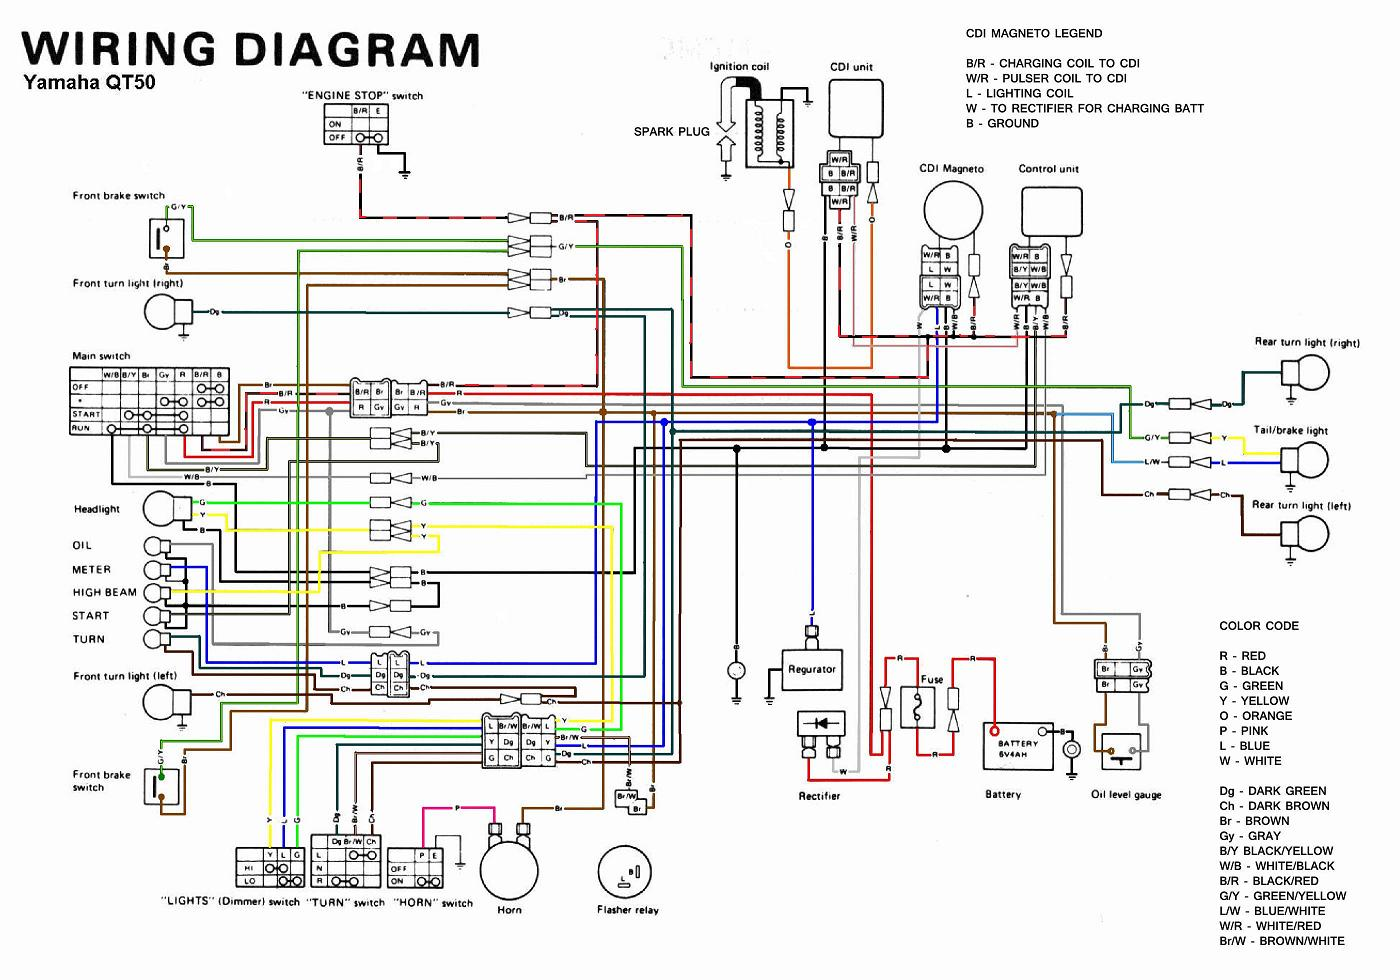 Yamaha QT50 Wiring Diagram yamaha gt80 wiring diagram free picture schematic wiring diagram data